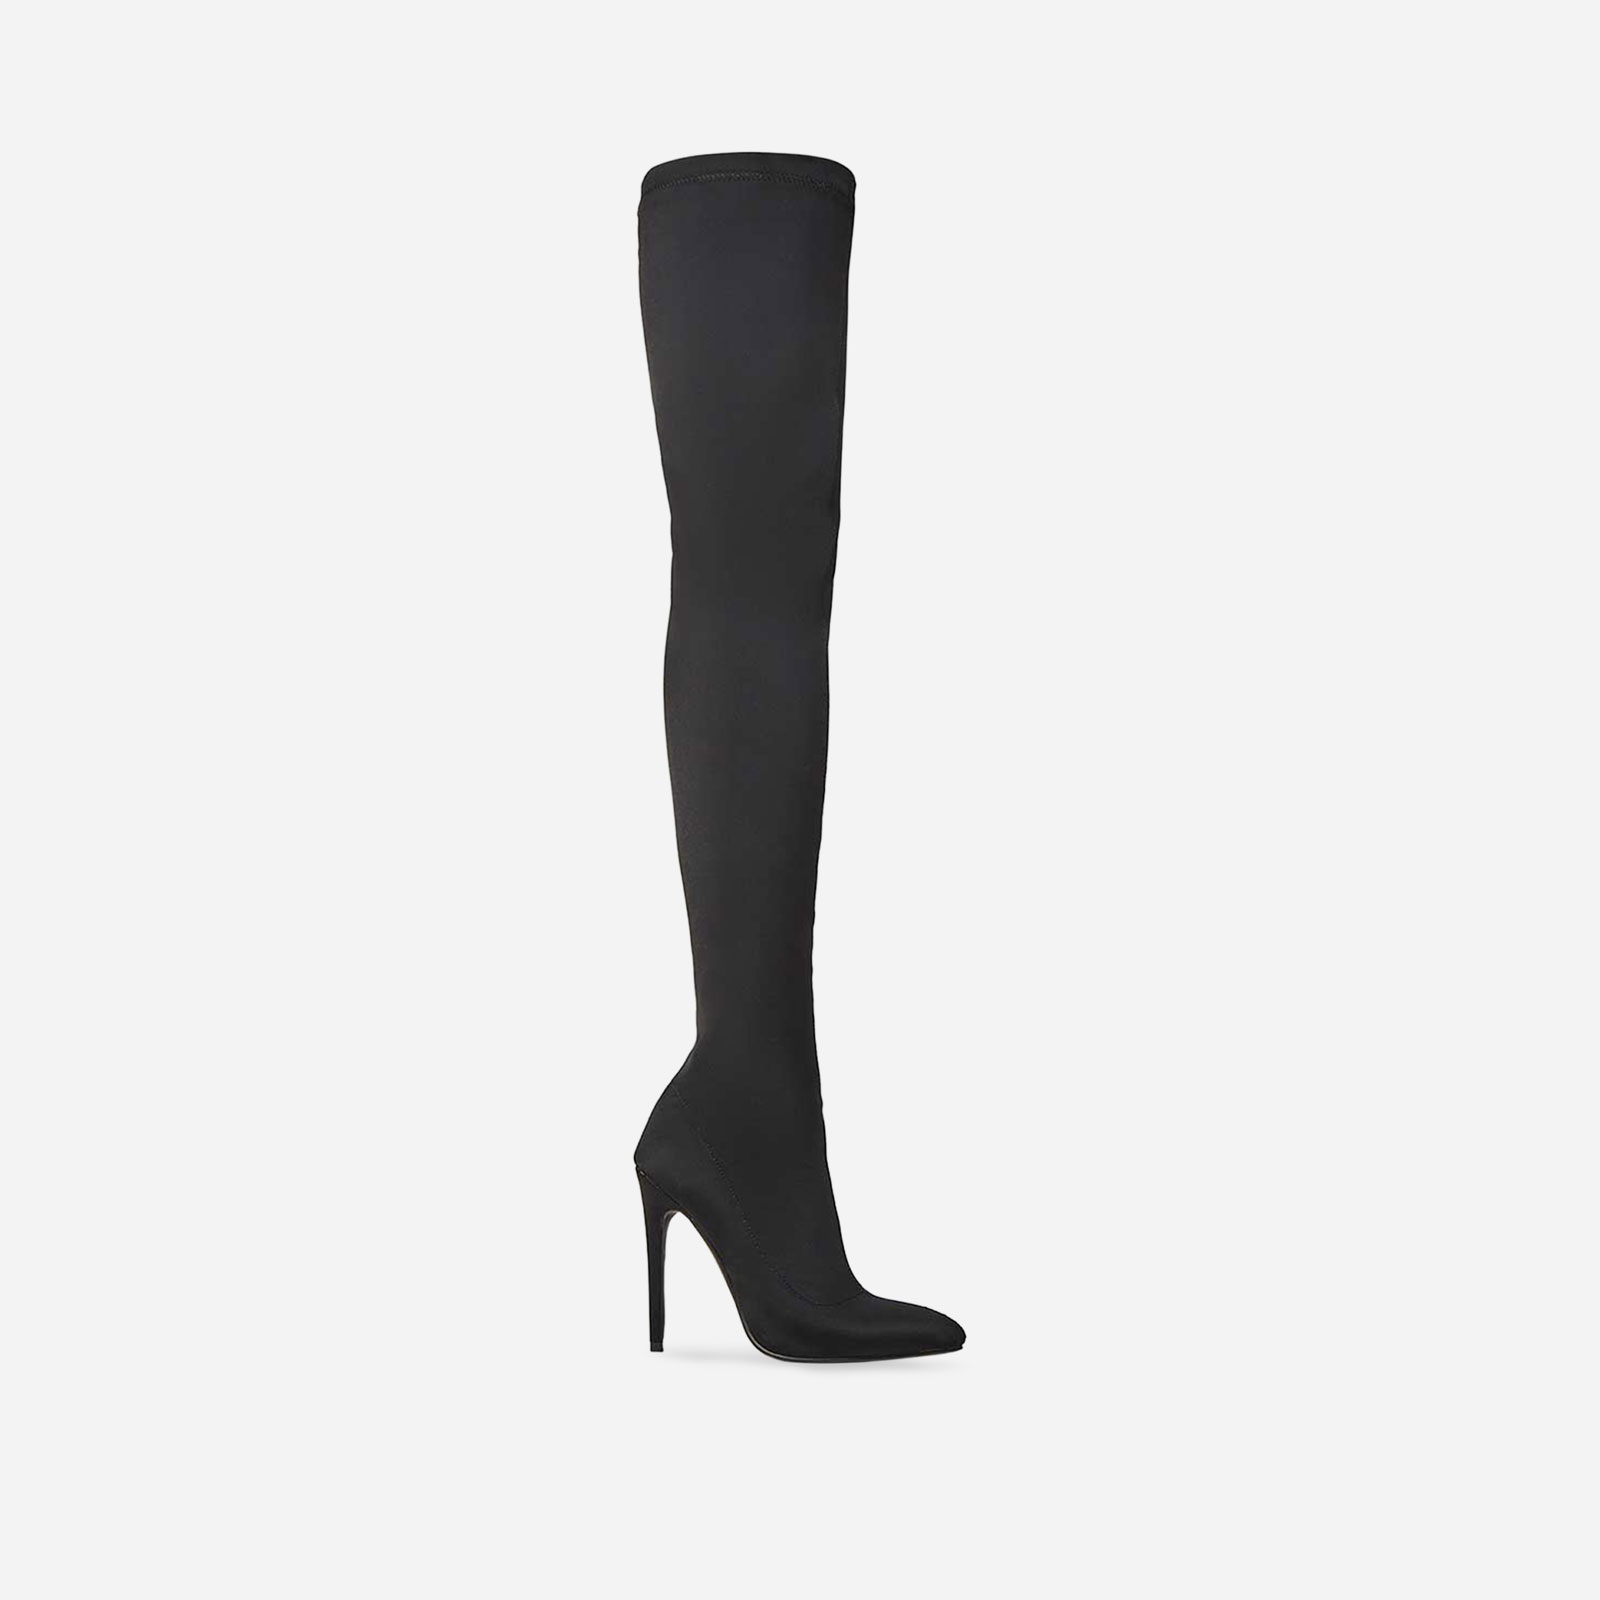 Alabama Pointed Toe Long Boot In Black Lycra Image 1